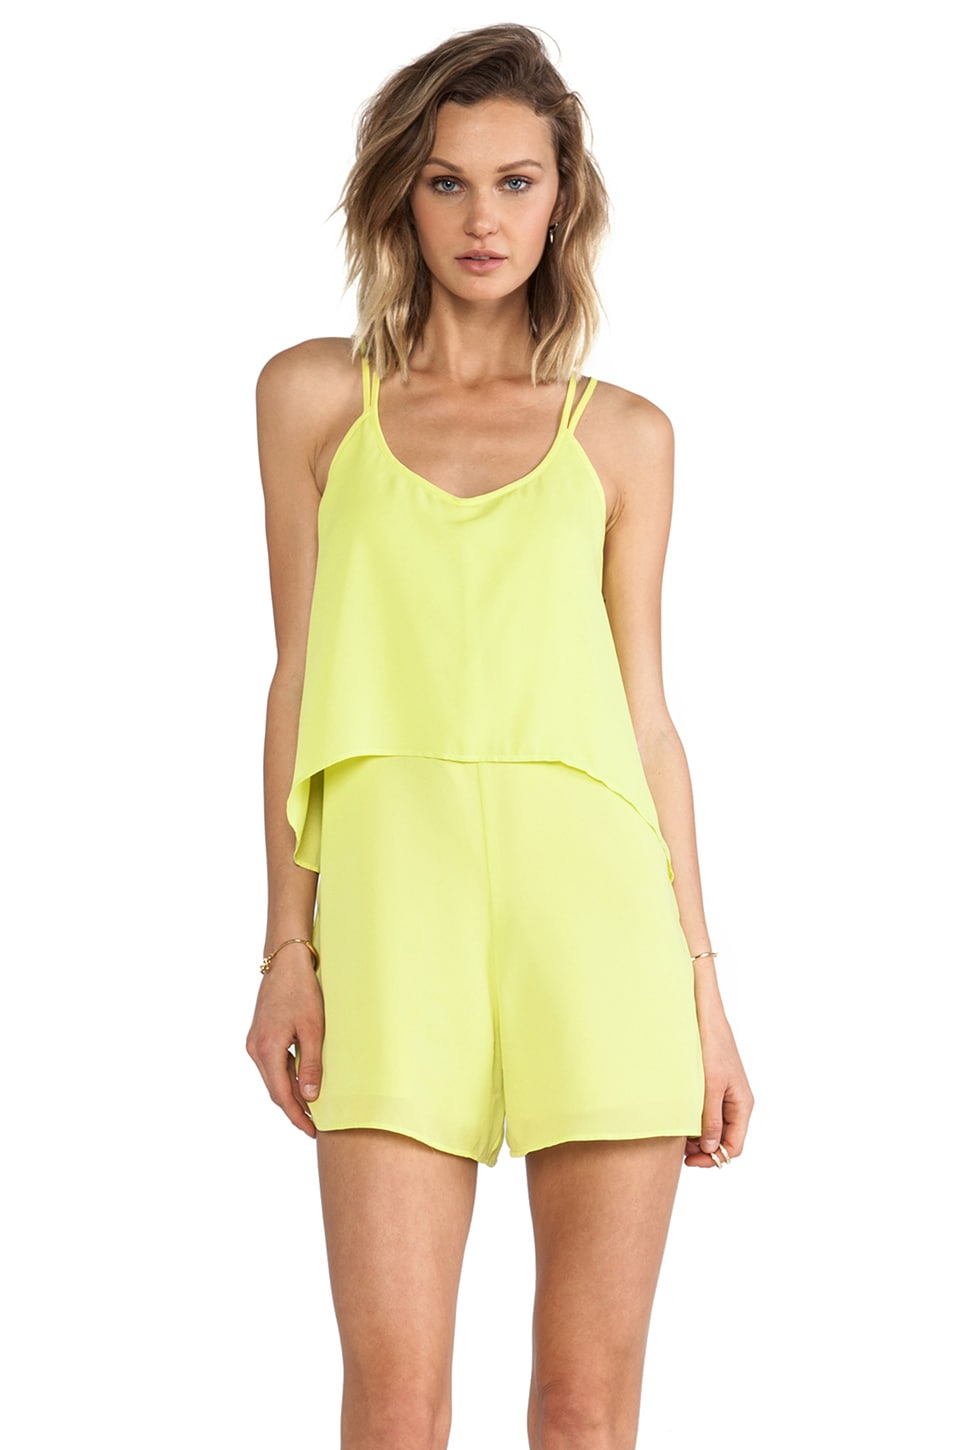 Ladakh Criss Cross Romper in Citrus